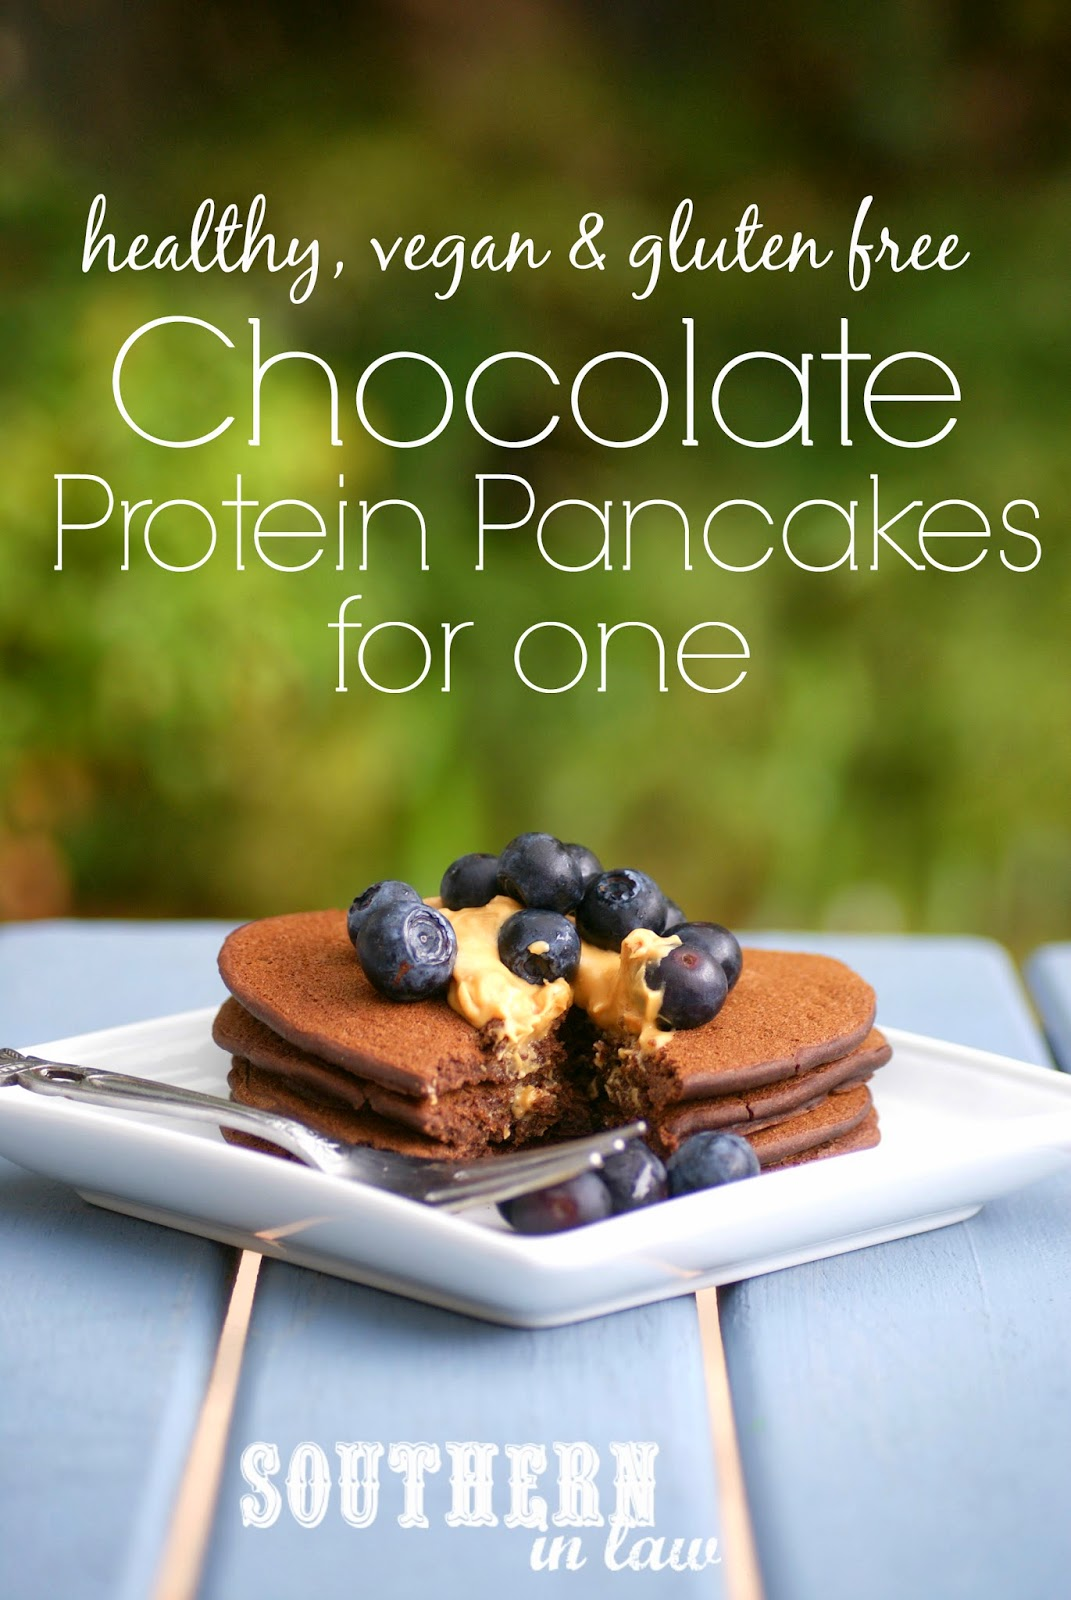 Single Serving Chocolate Protein Pancakes Recipe